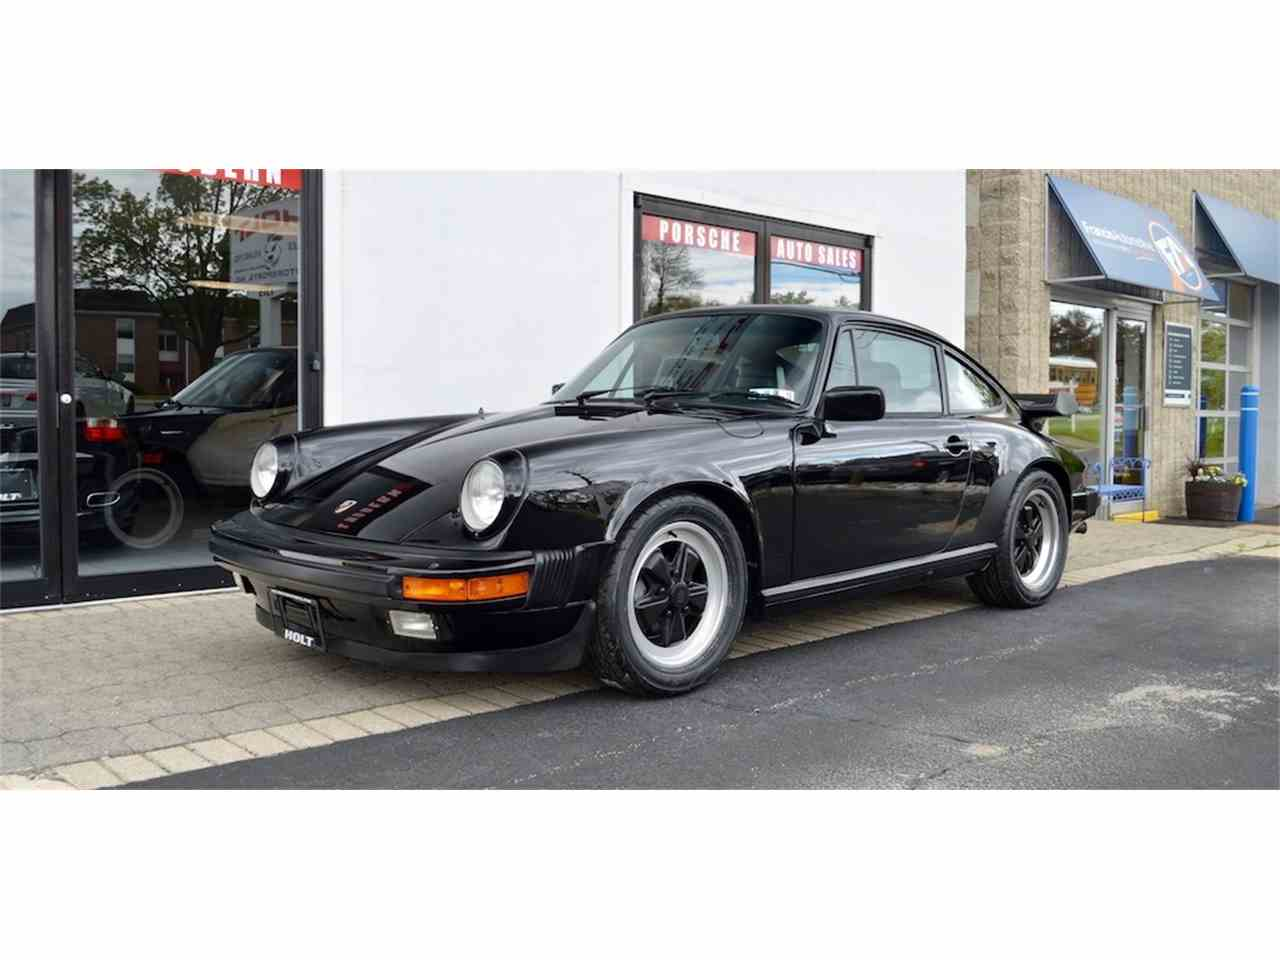 1984 porsche carrera for sale classiccars cc 966645 large picture of 84 carrera kpv9 sciox Image collections